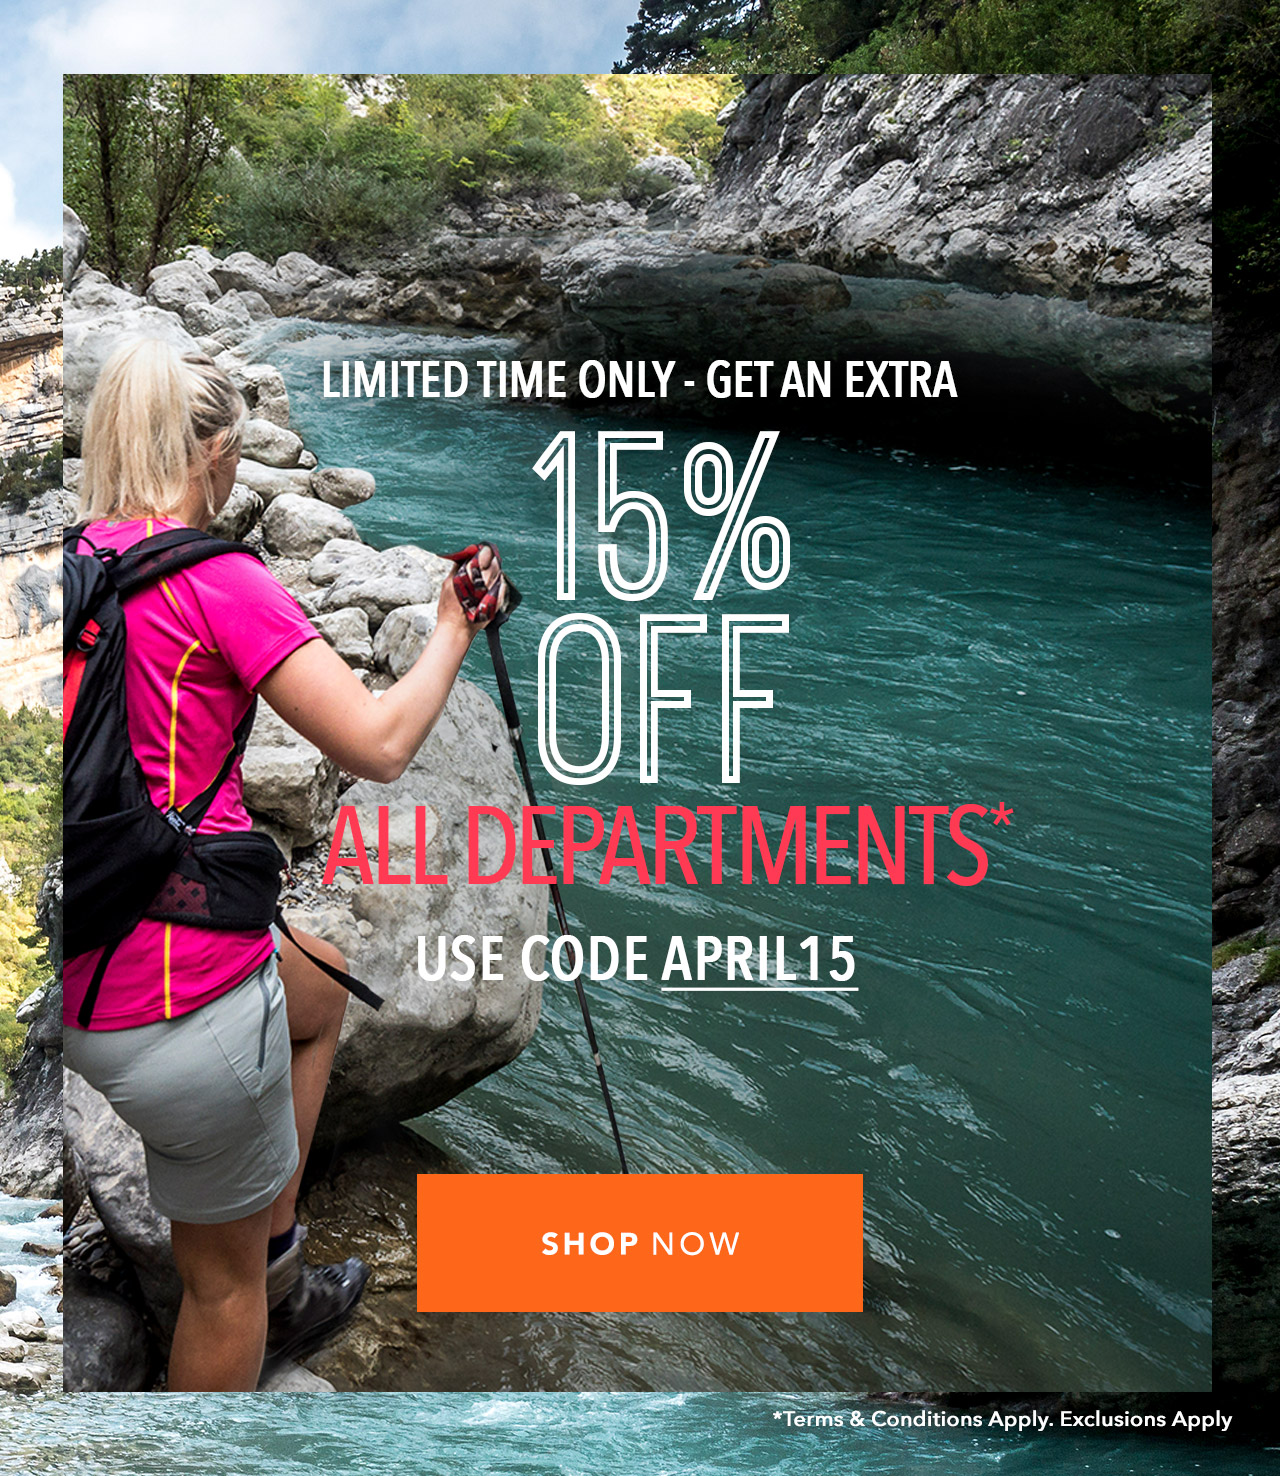 Limited Time Only | Get An Extra 15% Off All Department* Use Code APRIL15